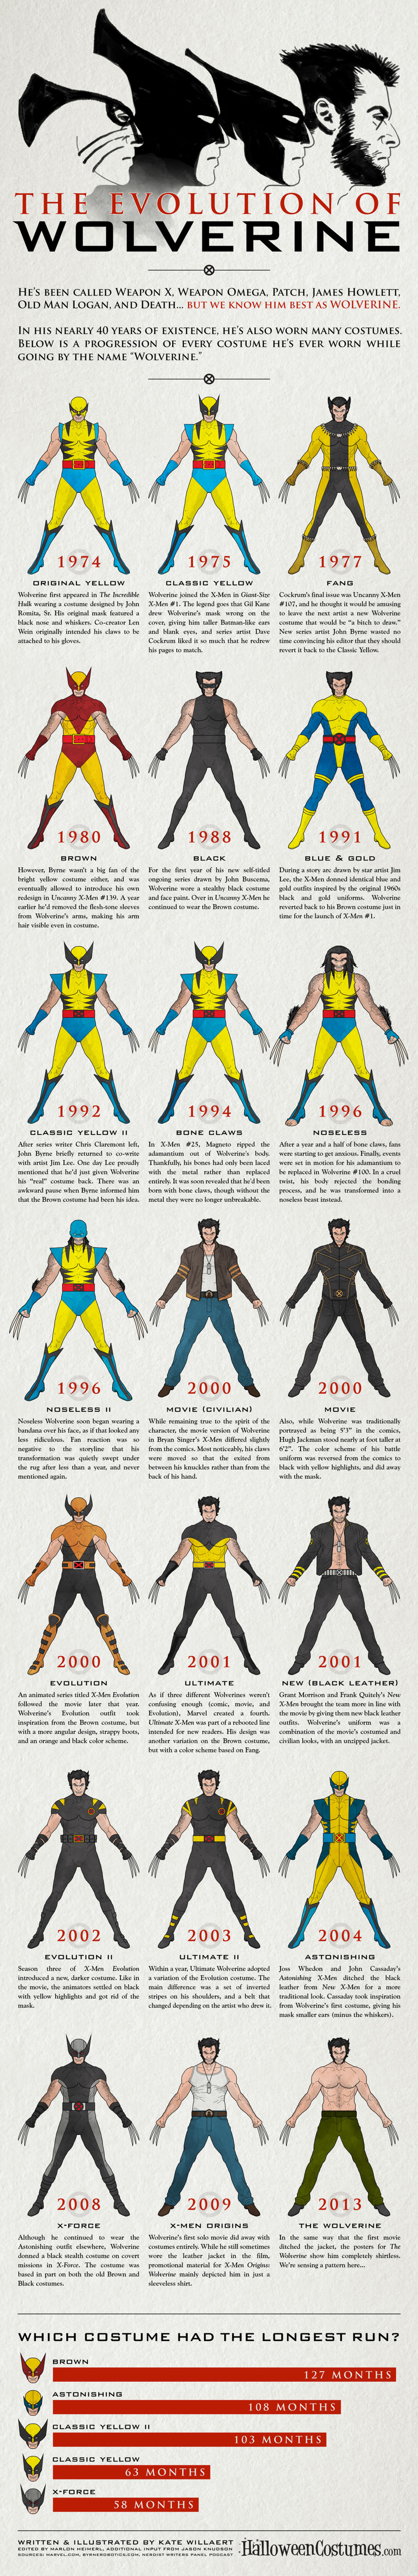 The Evolution of Wolverine Infographic